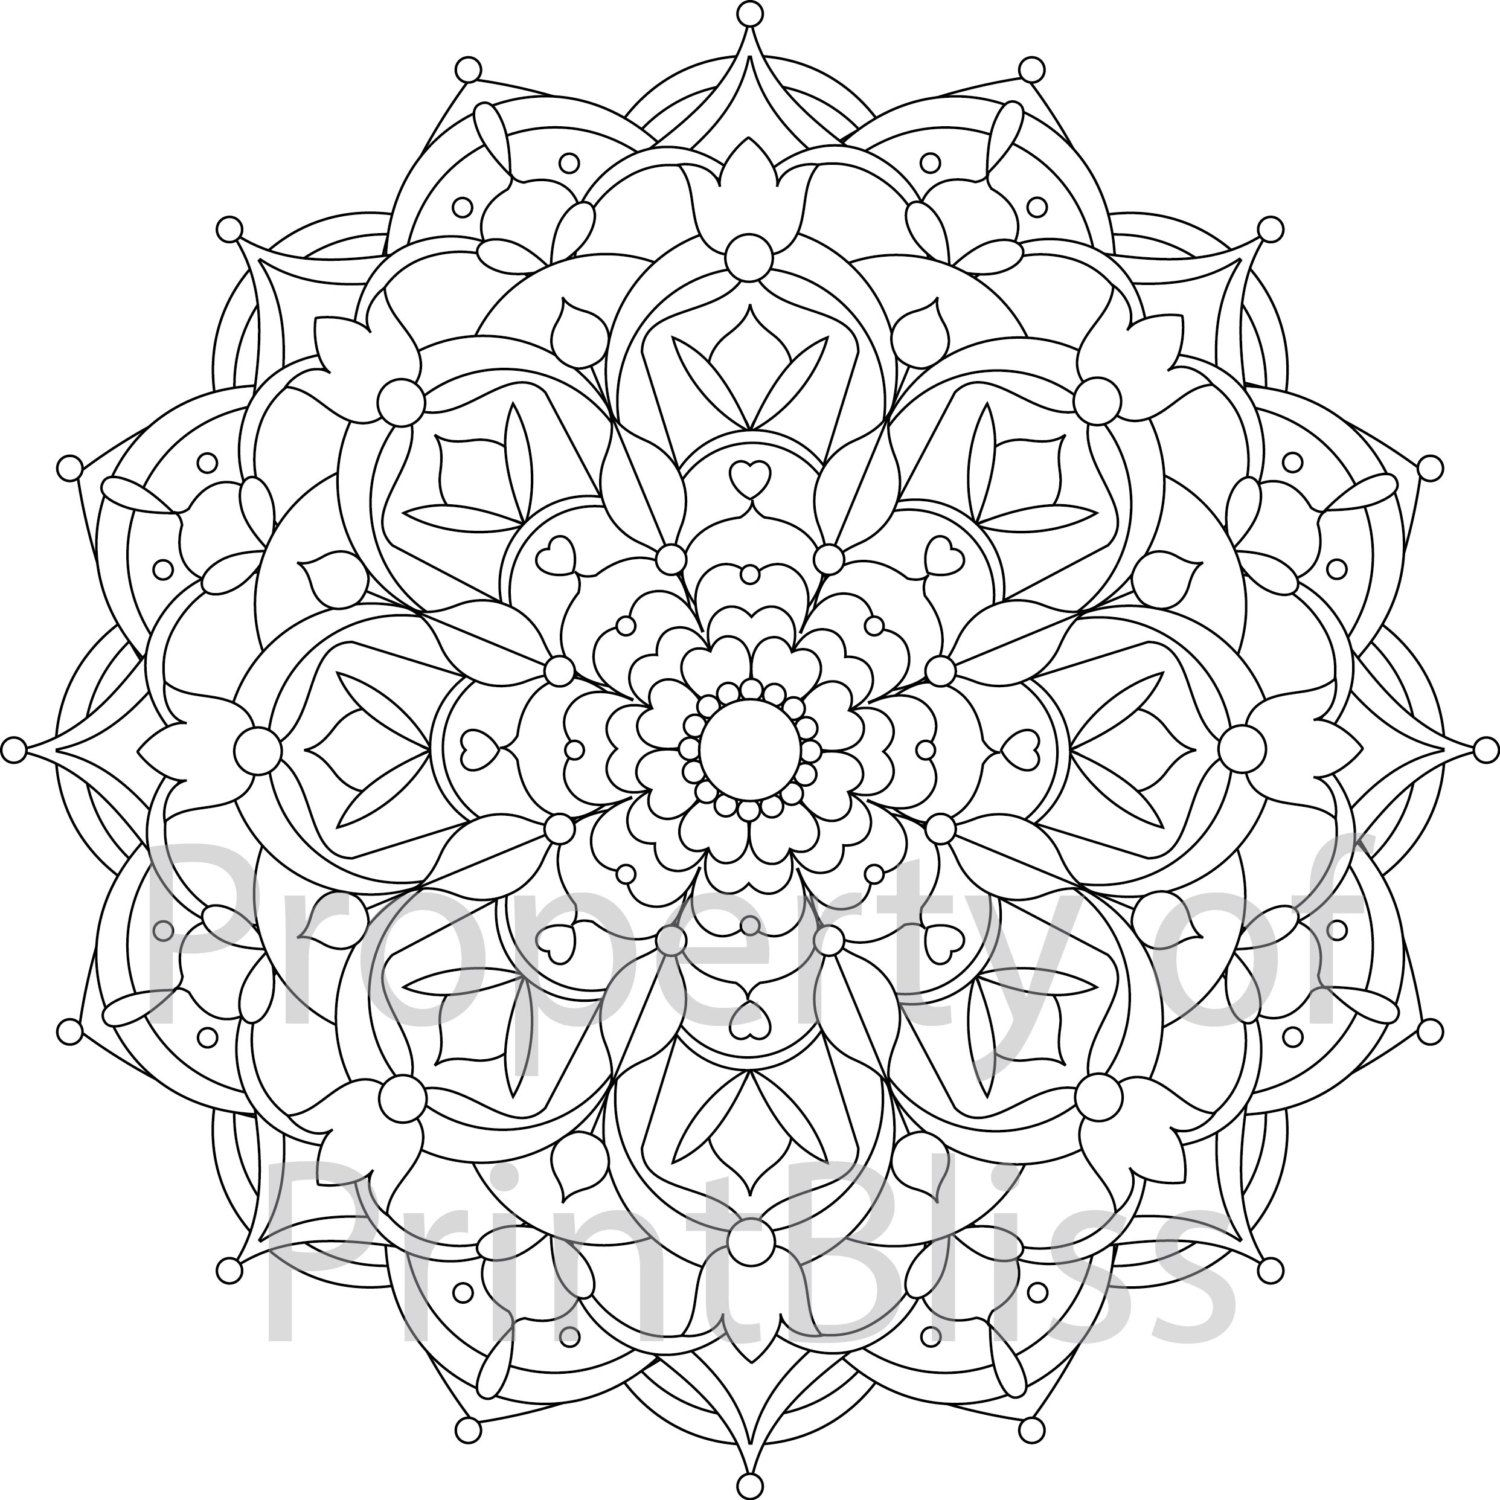 22 flower mandala printable coloring page by printbliss on etsy art my work pinterest. Black Bedroom Furniture Sets. Home Design Ideas